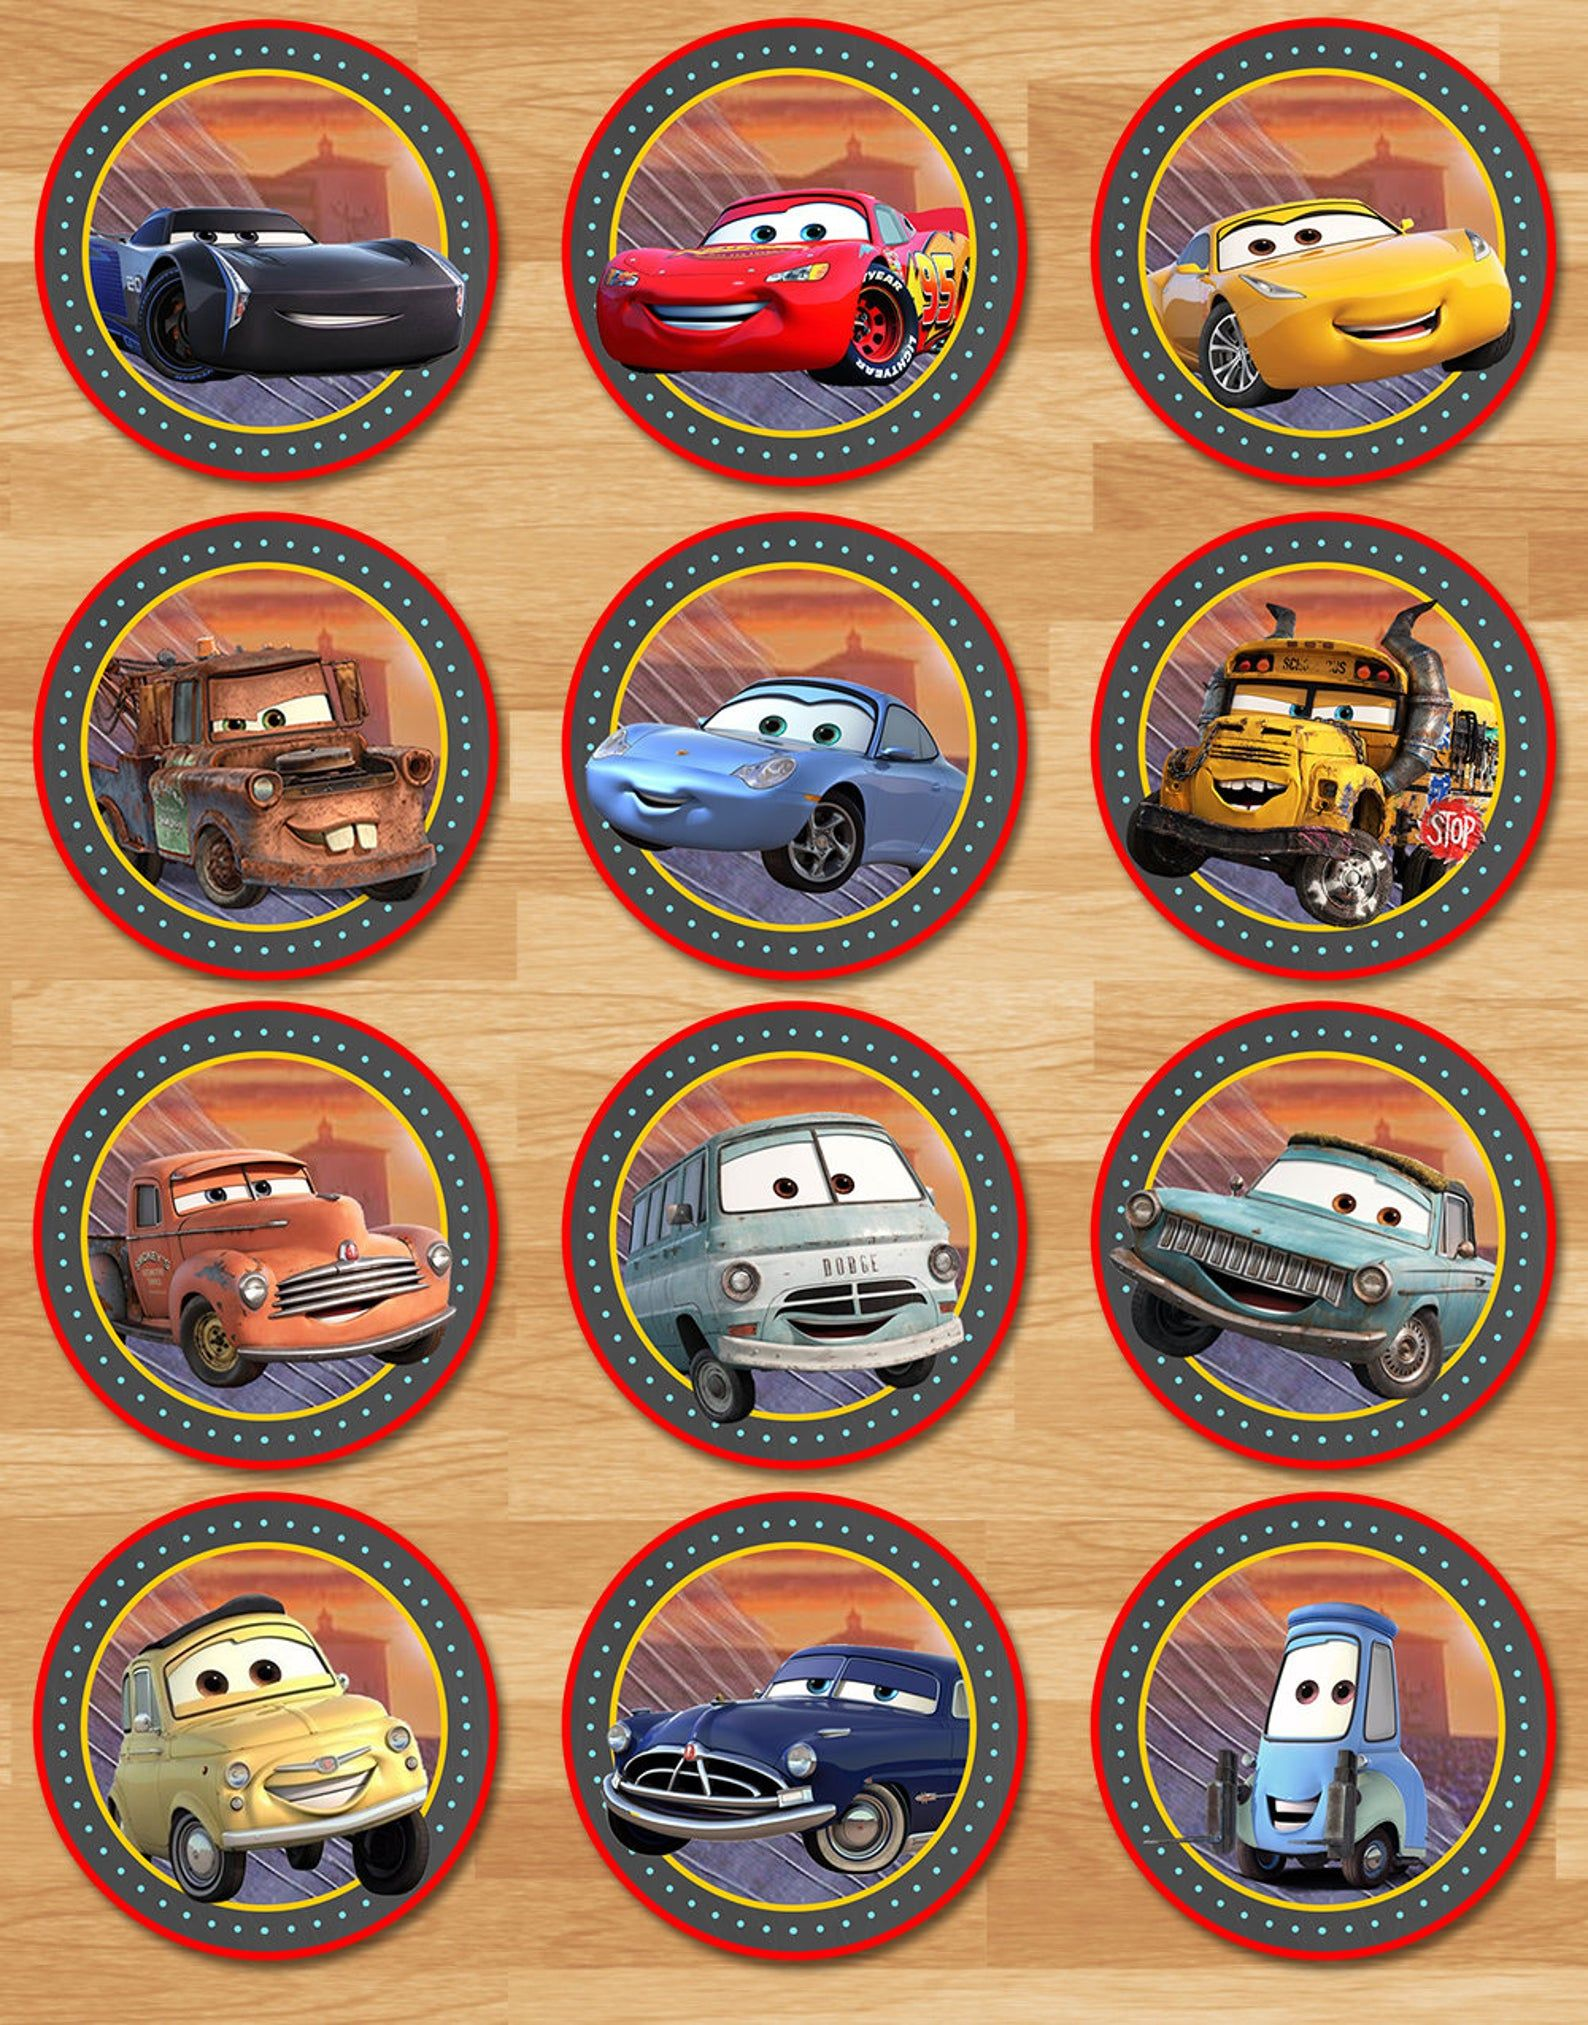 Disney Cars 3 Cupcake Toppers Chalkboard Cars 3 Stickers Etsy In 2021 Cars Birthday Party Disney Disney Cars Birthday Cars Birthday Parties [ 2025 x 1588 Pixel ]